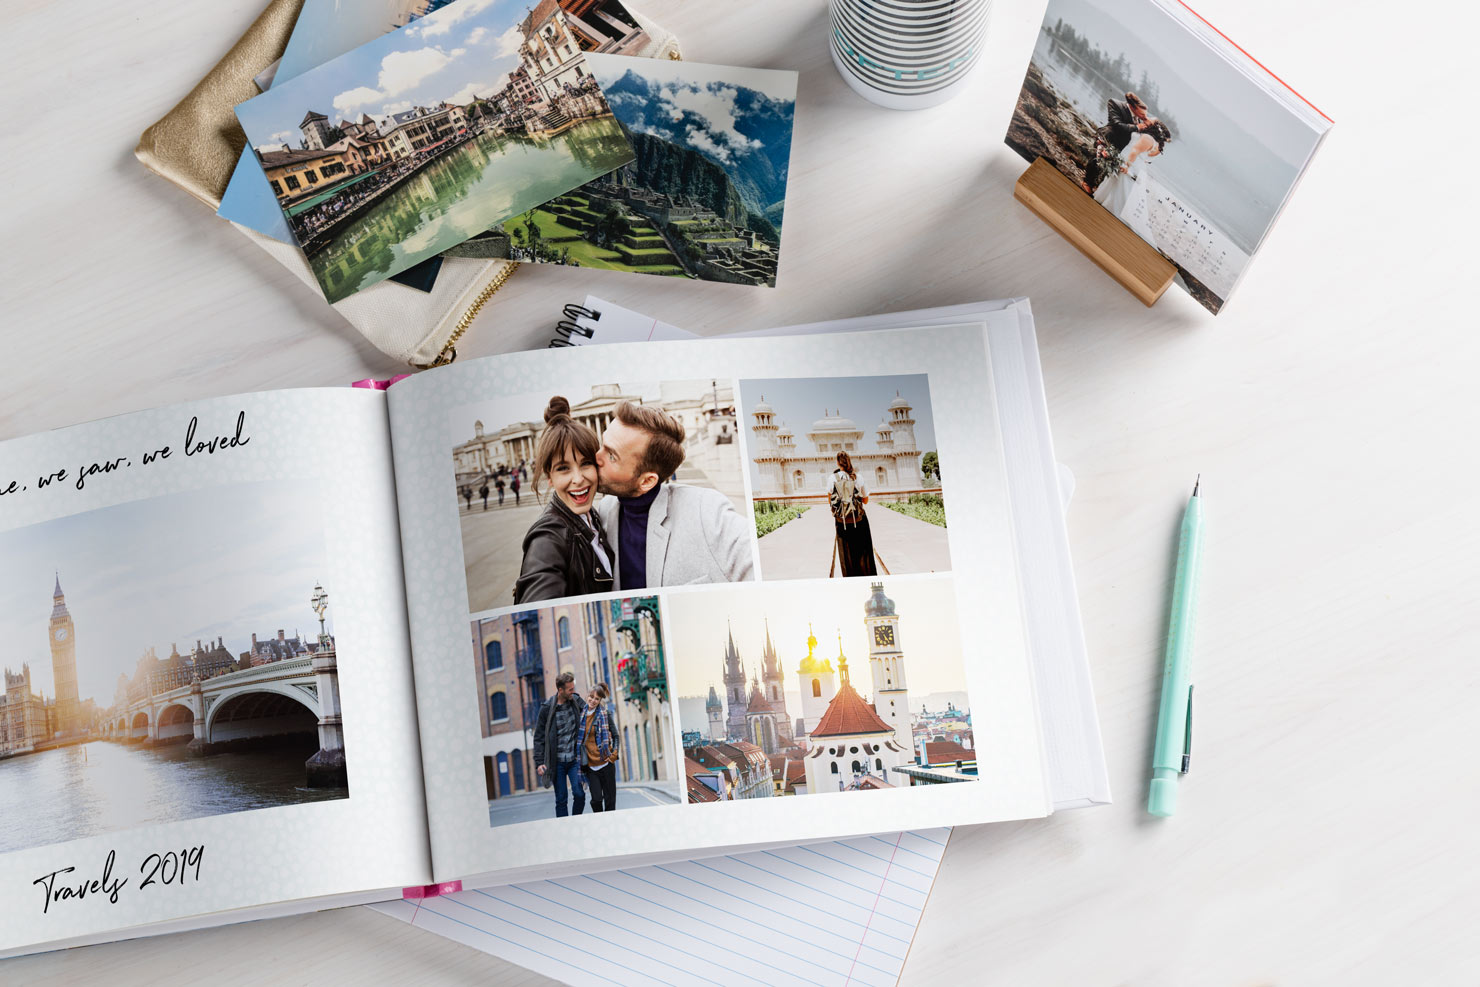 making photo books online with collage photos and memories